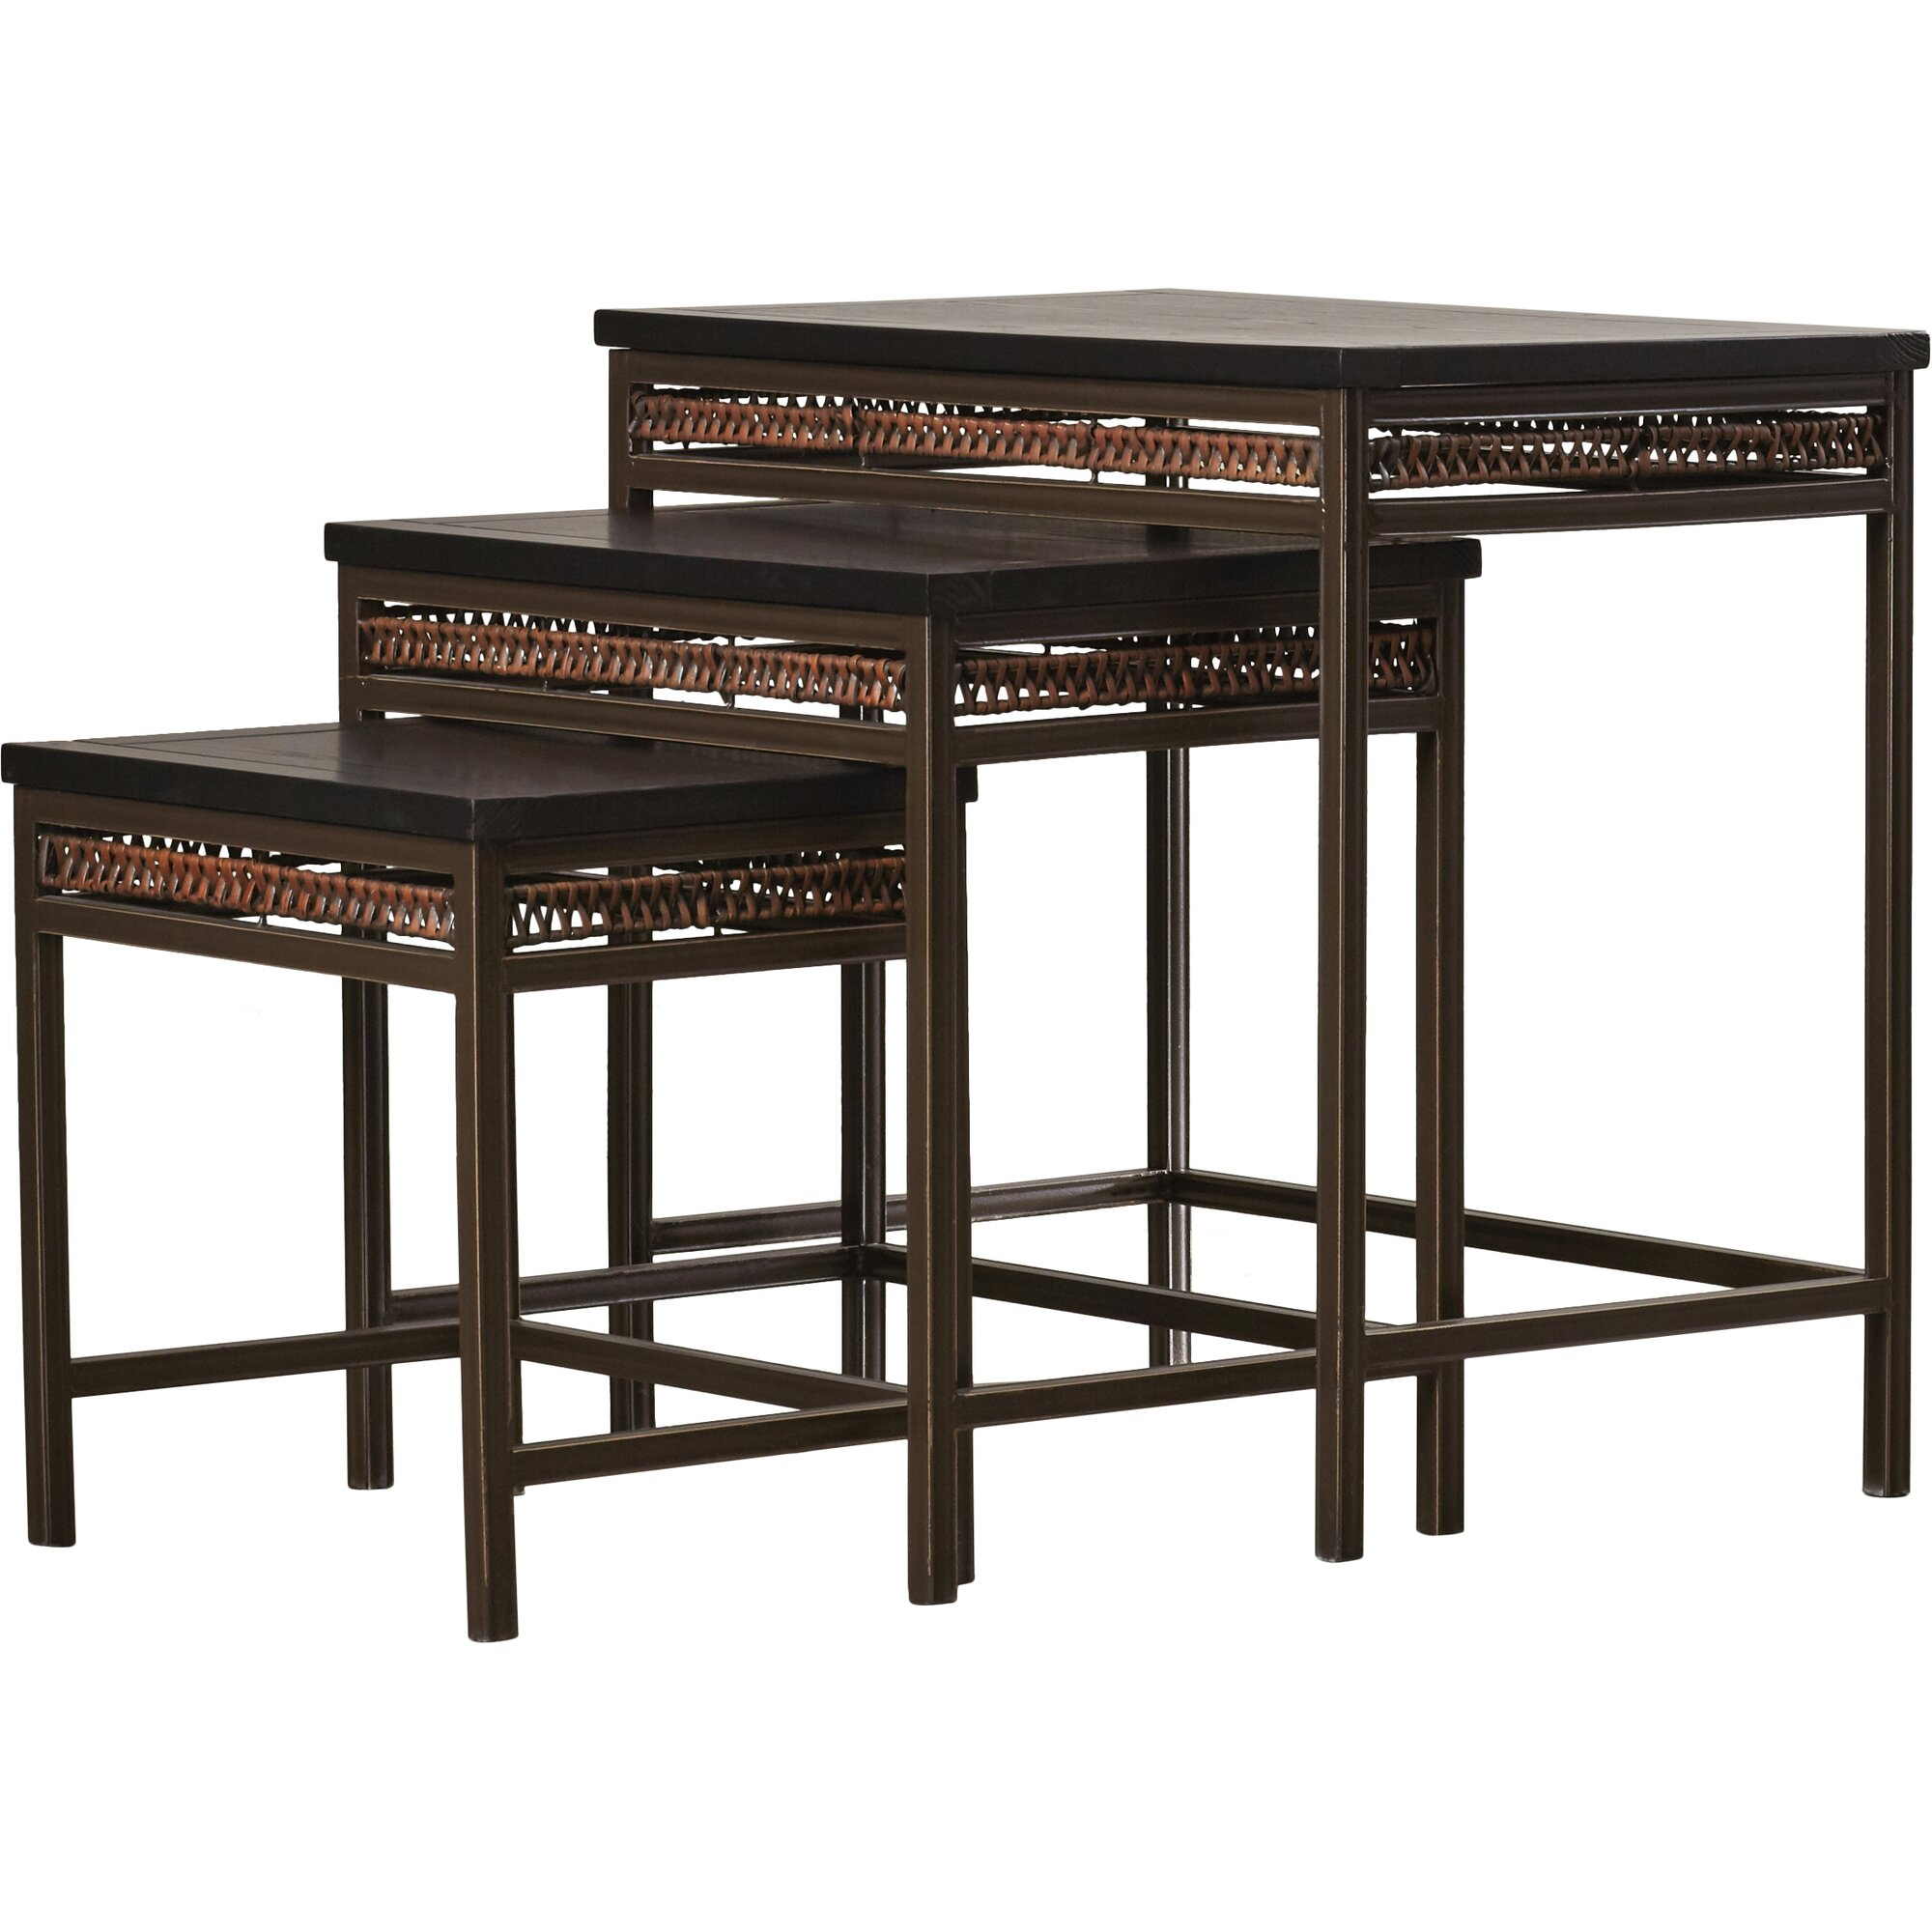 Wayfair Furniture Nesting Tables